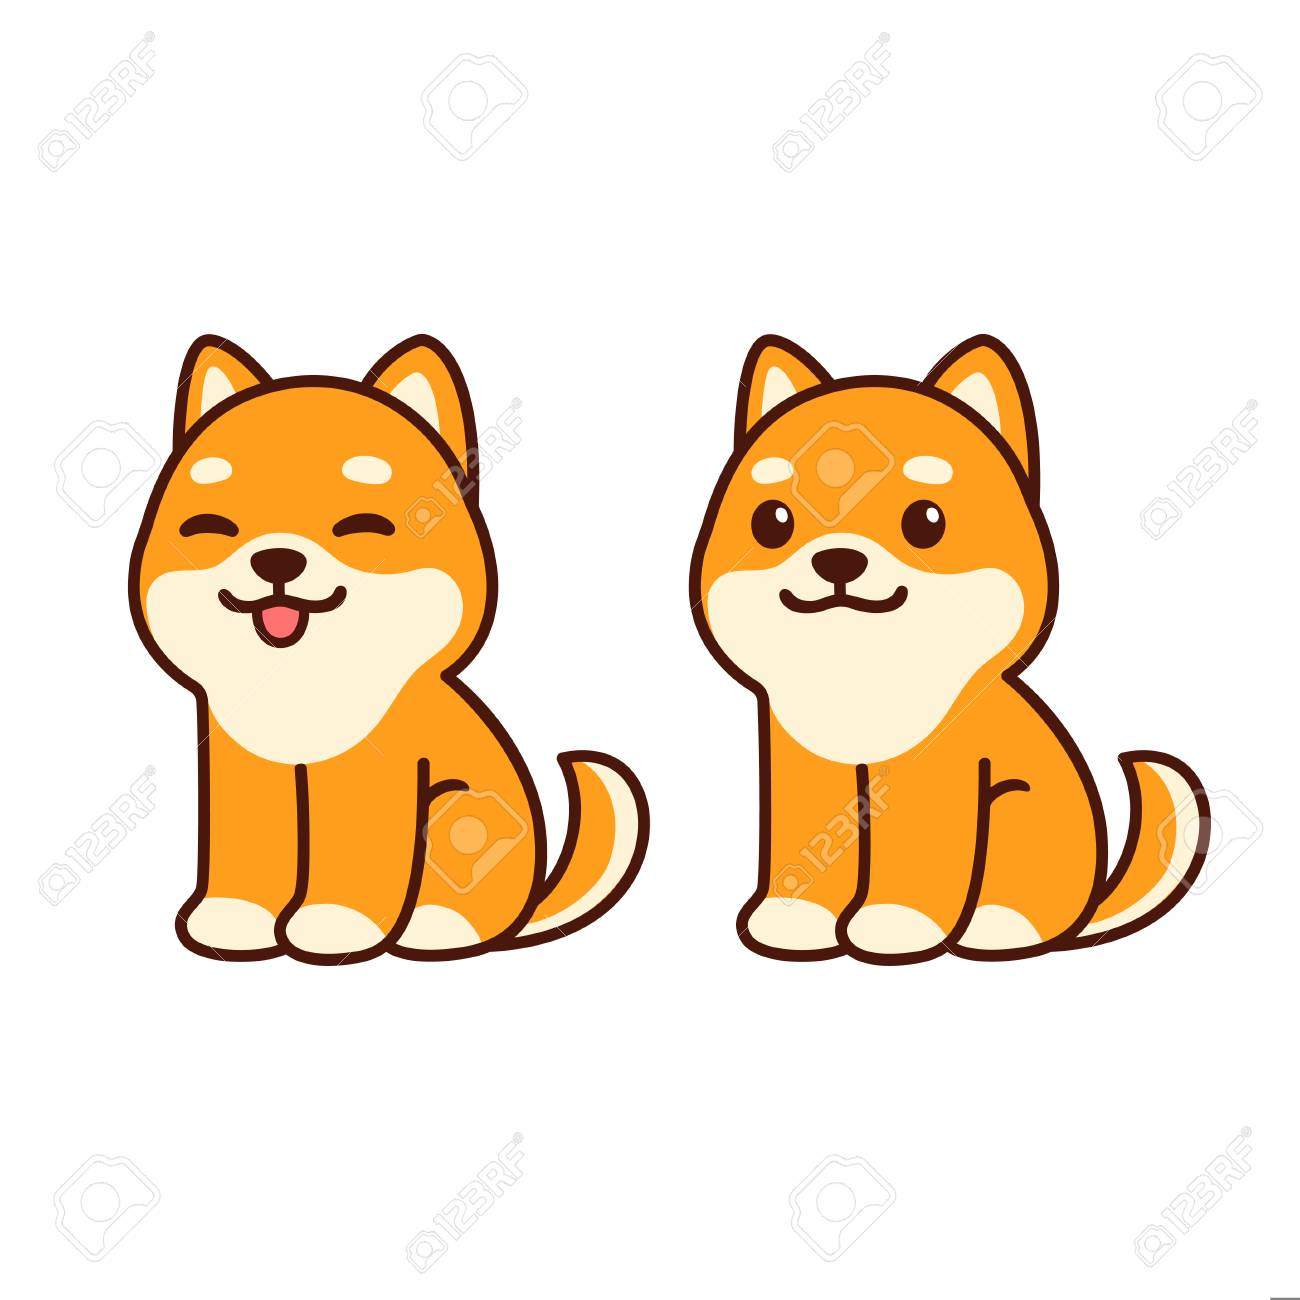 Cute Chiba Inu Puppy Sitting Sticking Out Tongue Happy Cartoon Royalty Free Cliparts Vectors And Stock Illustration Image 121240621